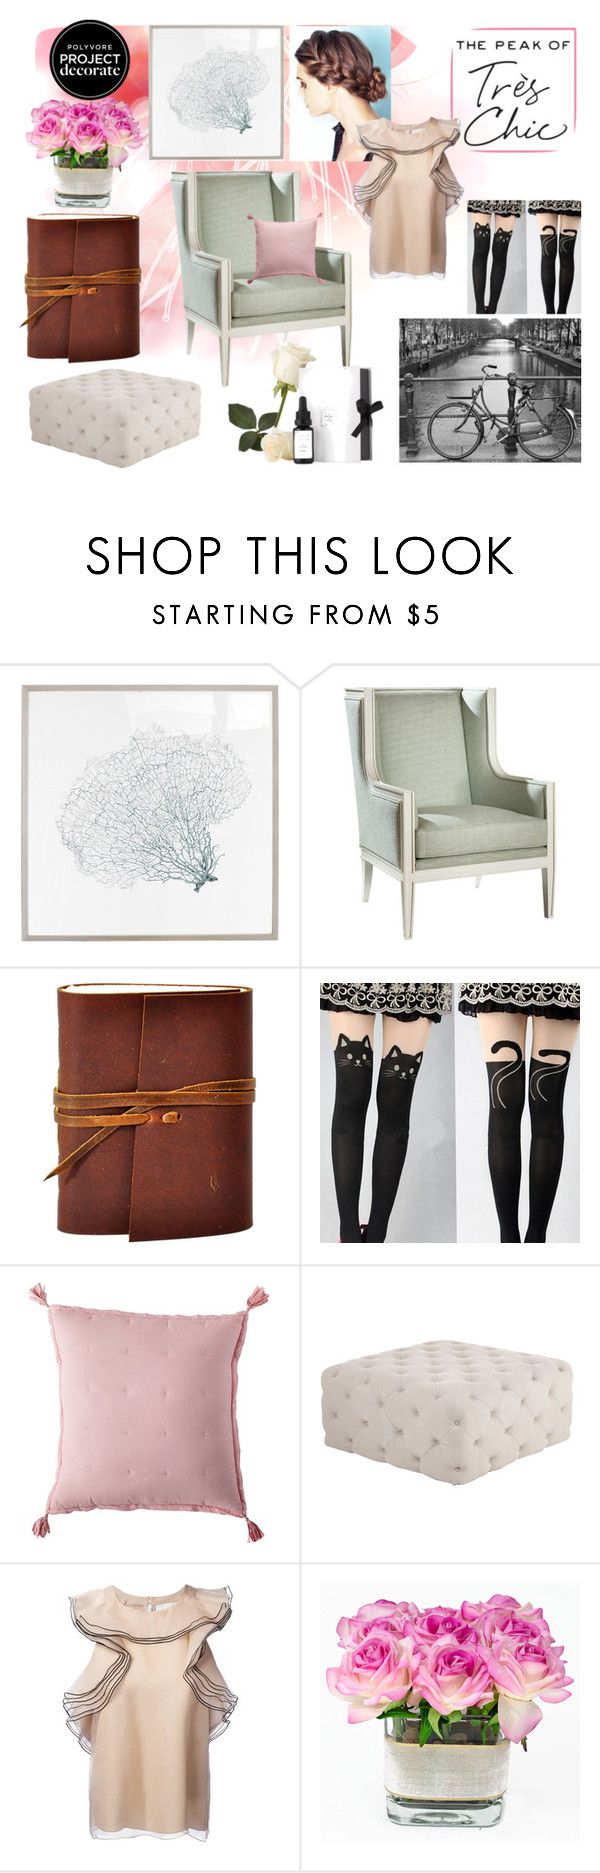 """""""La Parigina"""" by diamantipaola ❤ liked on Polyvore featuring interior, interiors, interior design, home, home decor, interior decorating, Karen Robertson Collection, Belle Meade, Serena & Lily and Haute House"""